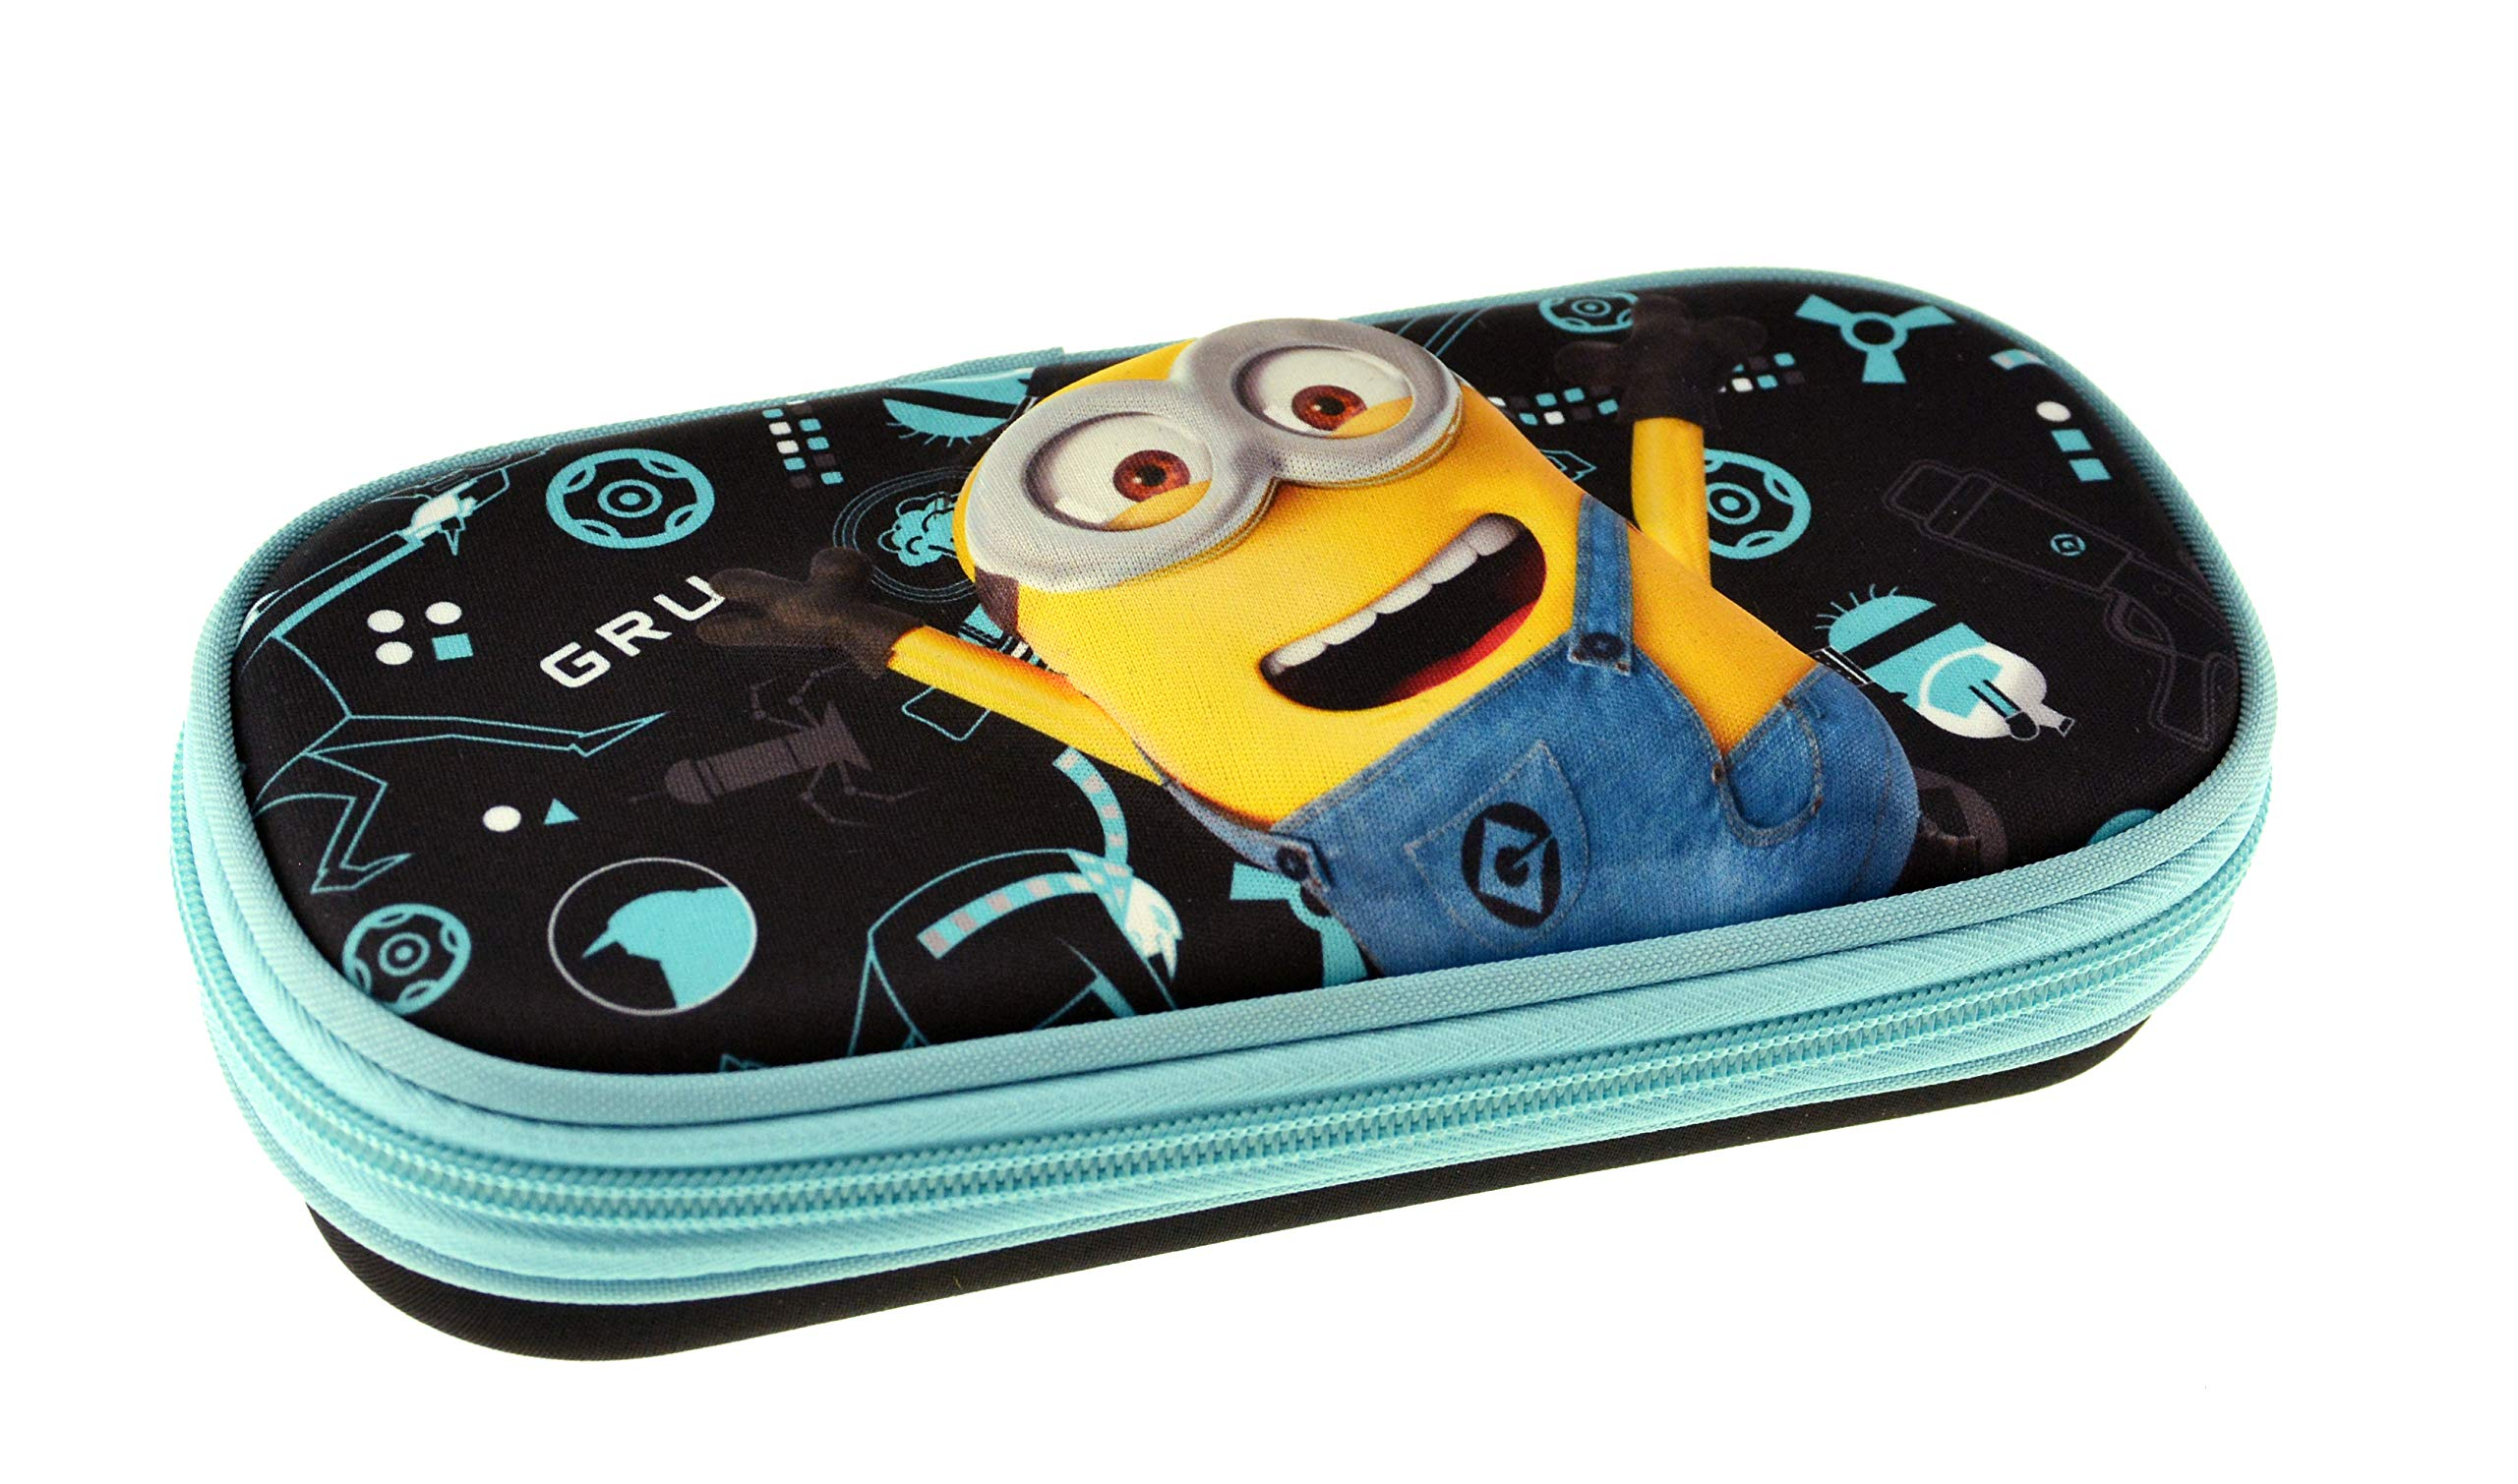 Graffiti Despicable Me Estuches, 22 cm, Negro (Black)